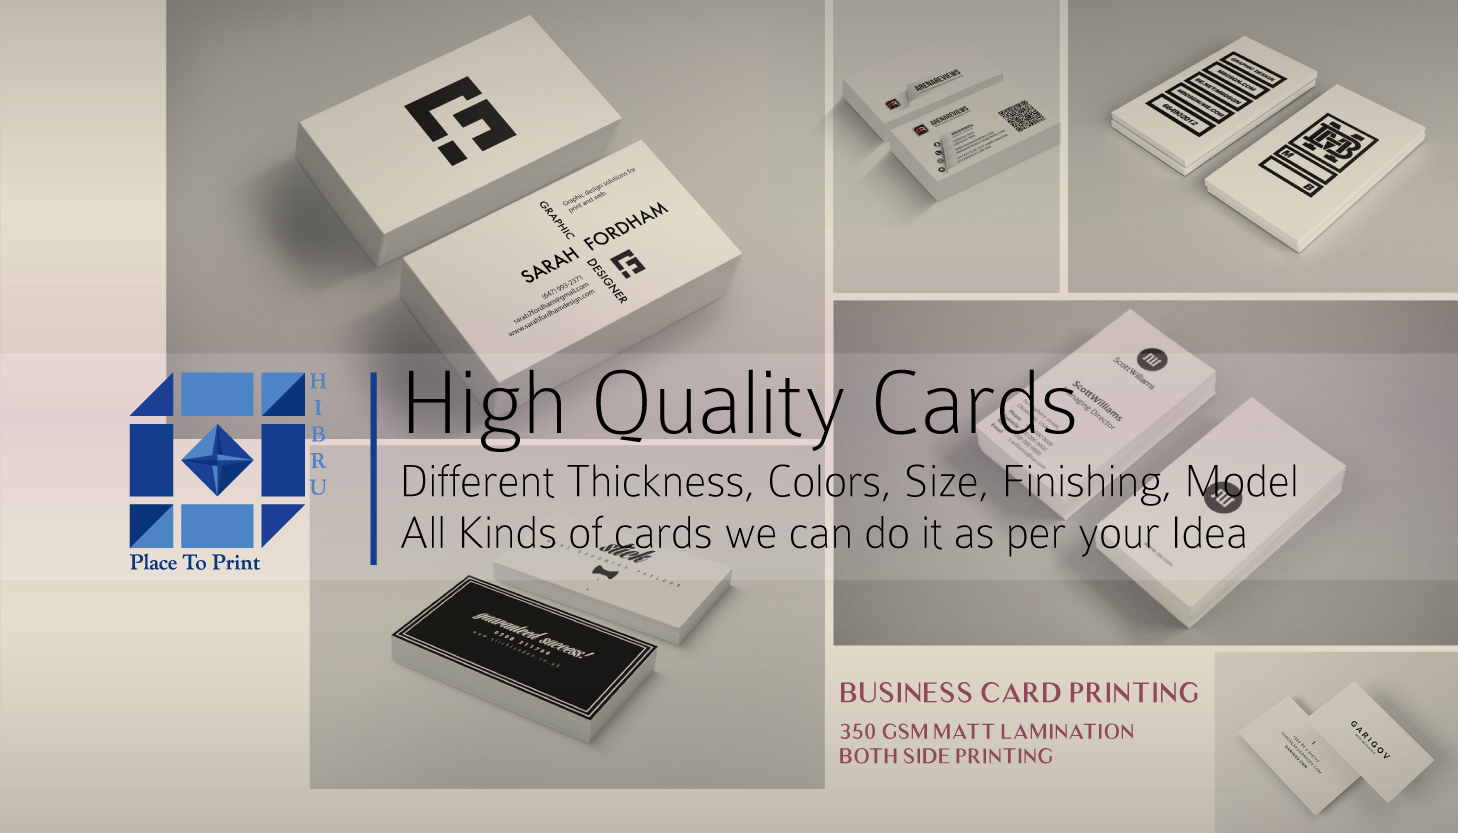 Business card printing best business cards business card template business card printing best business cards business card template business card printing cheap business cards visiting card reheart Images